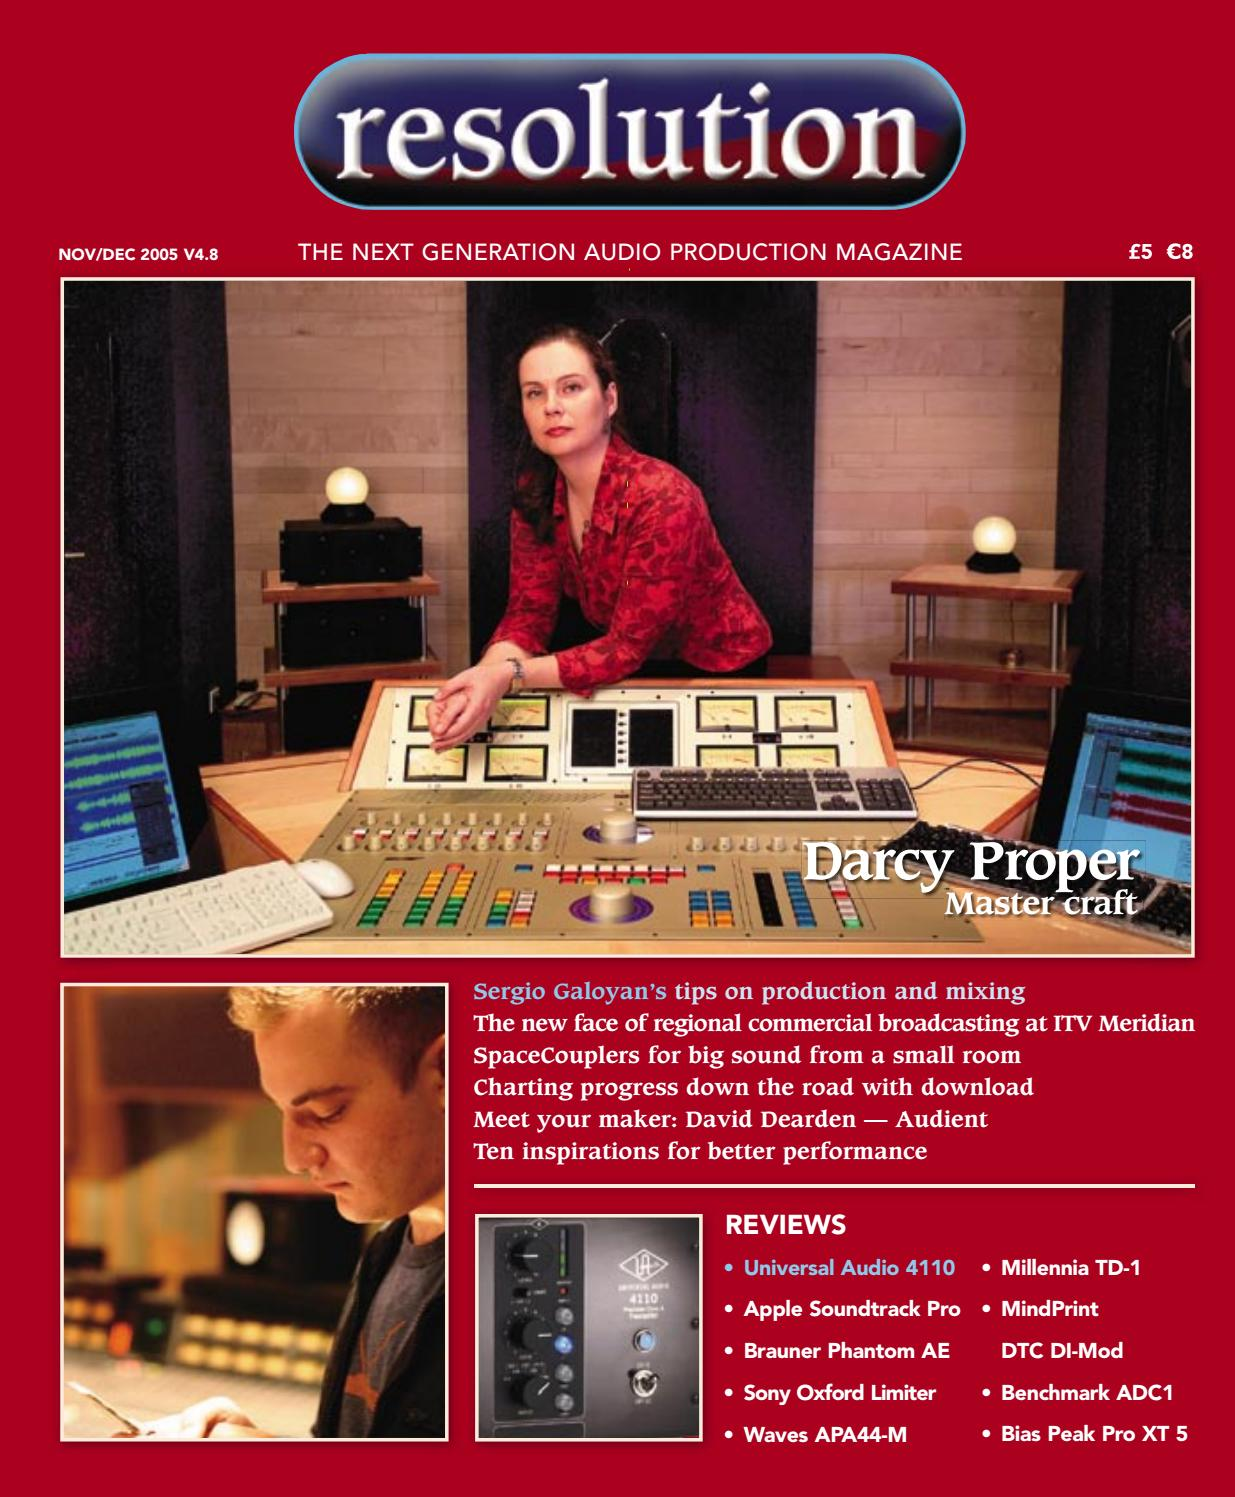 Resolution V4 8 Nov/Dec 2005 by Resolution - issuu